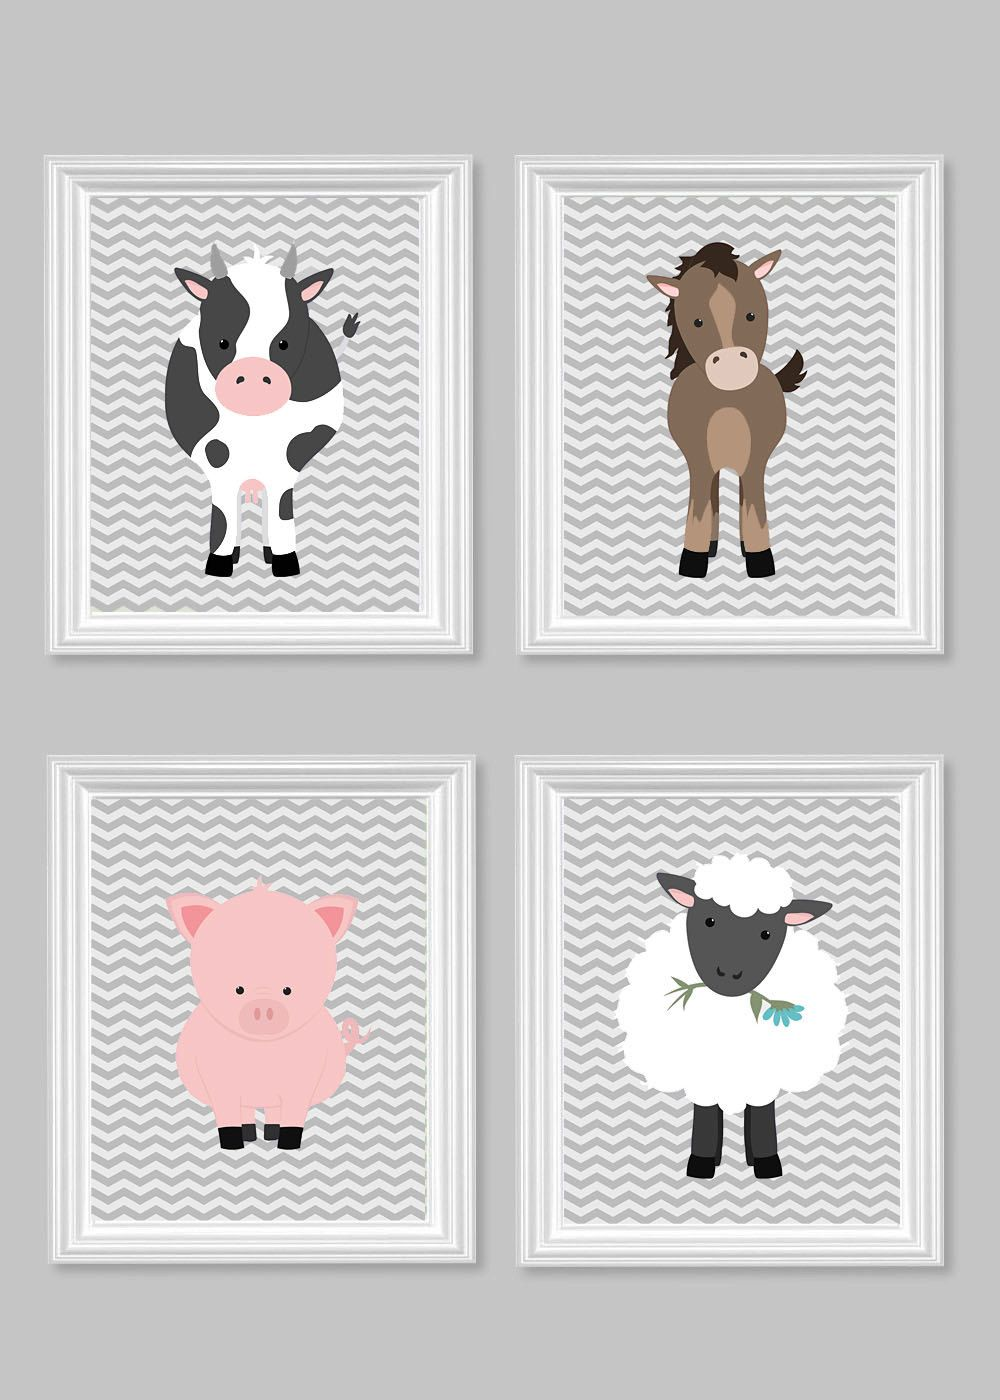 Farm Animal Nursery Art Kids Decor Cow Horse Pig Sheep Lamb Pony Grey Chevron Baby Shower Gift Gender Neutral By